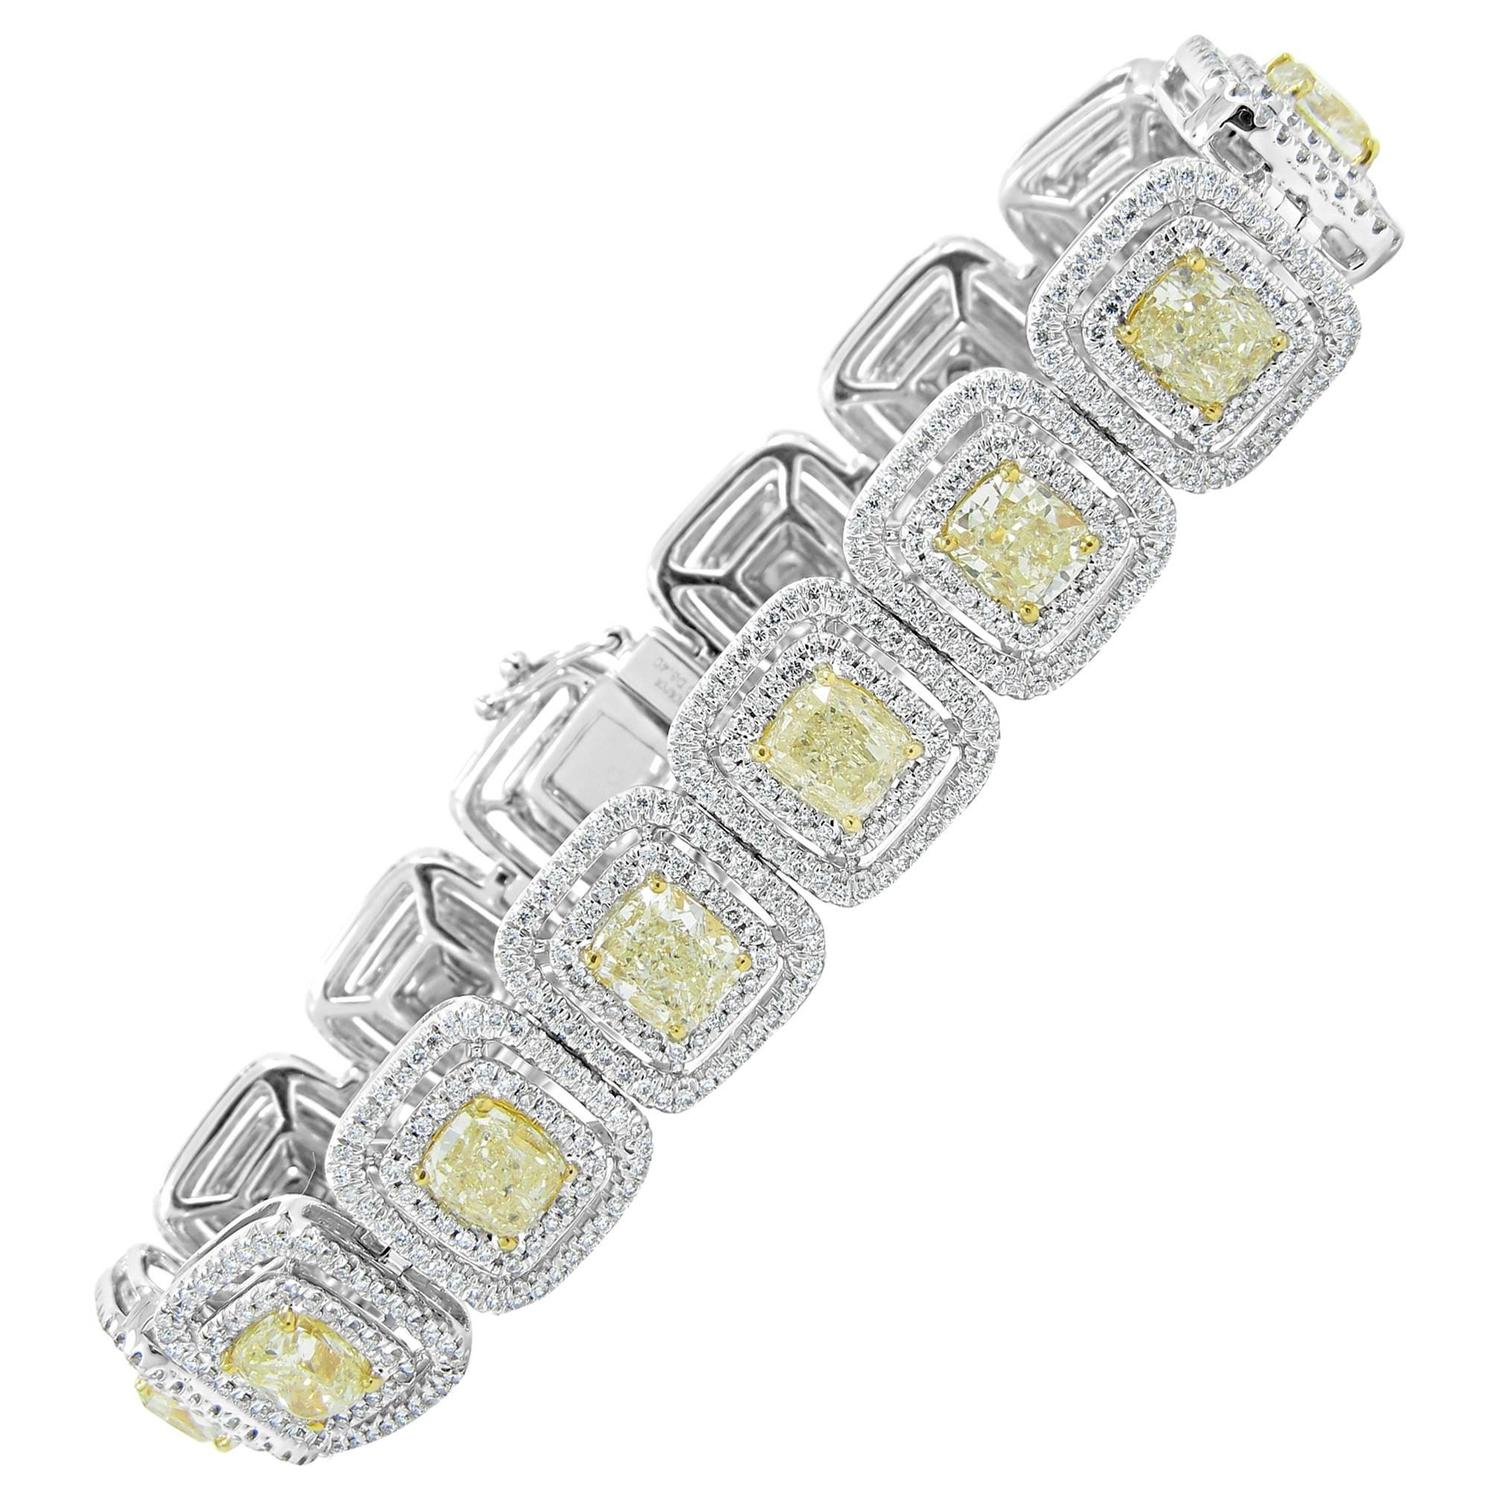 marks diamond bracelet shaped mg yg jewelry yellow products marquise gold cz tennis